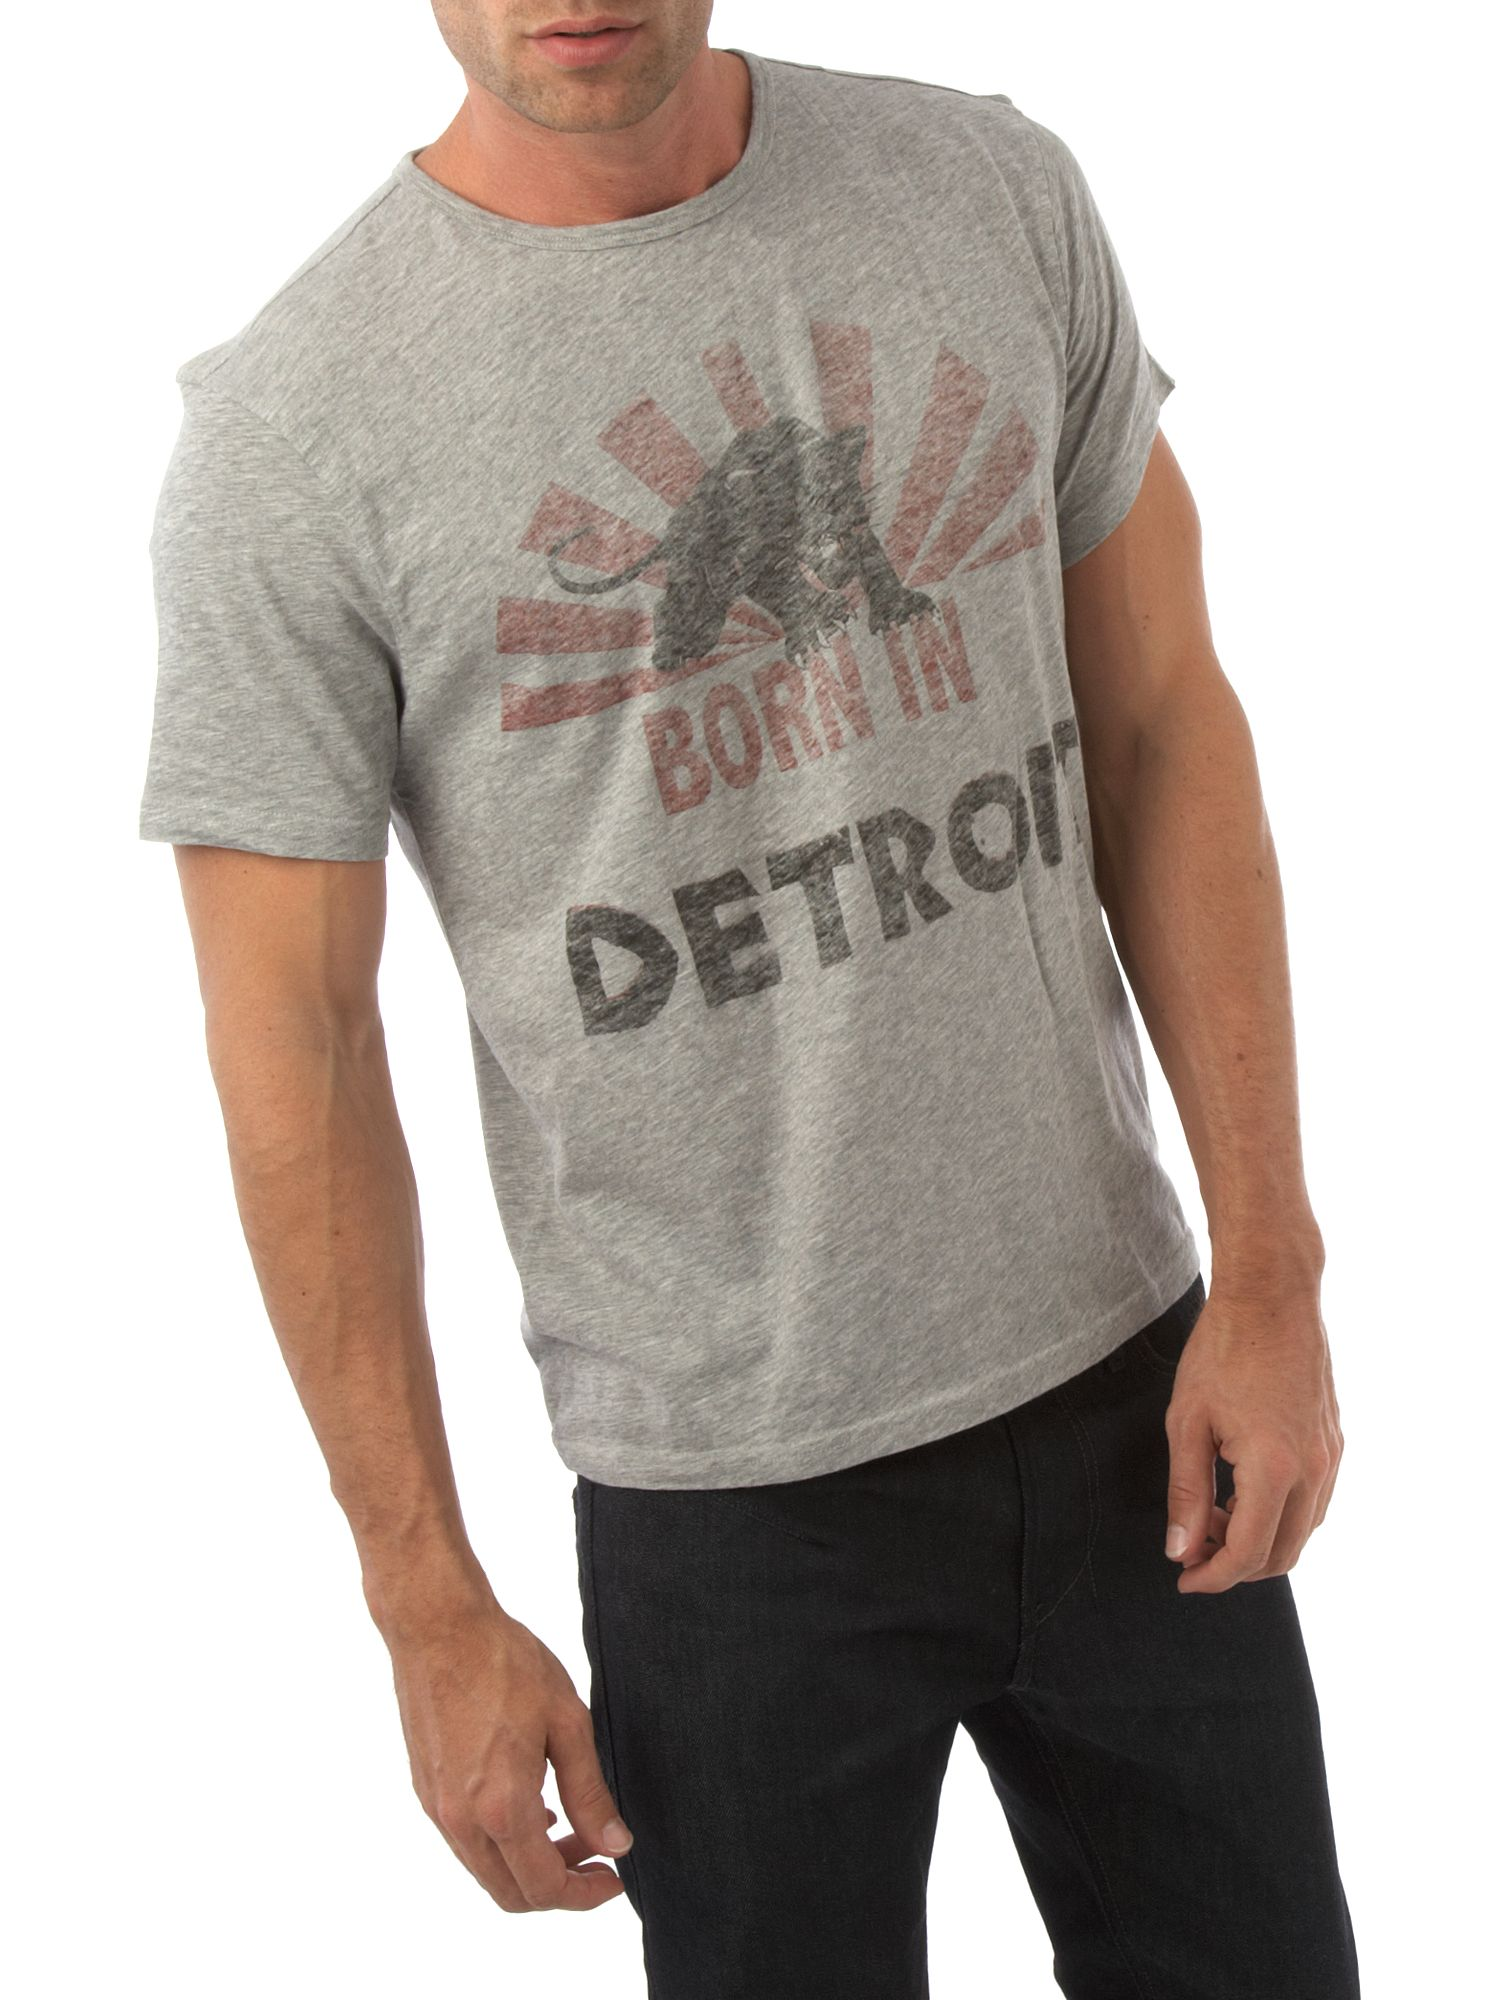 John Varvatos Detroit graphic tee Grey product image